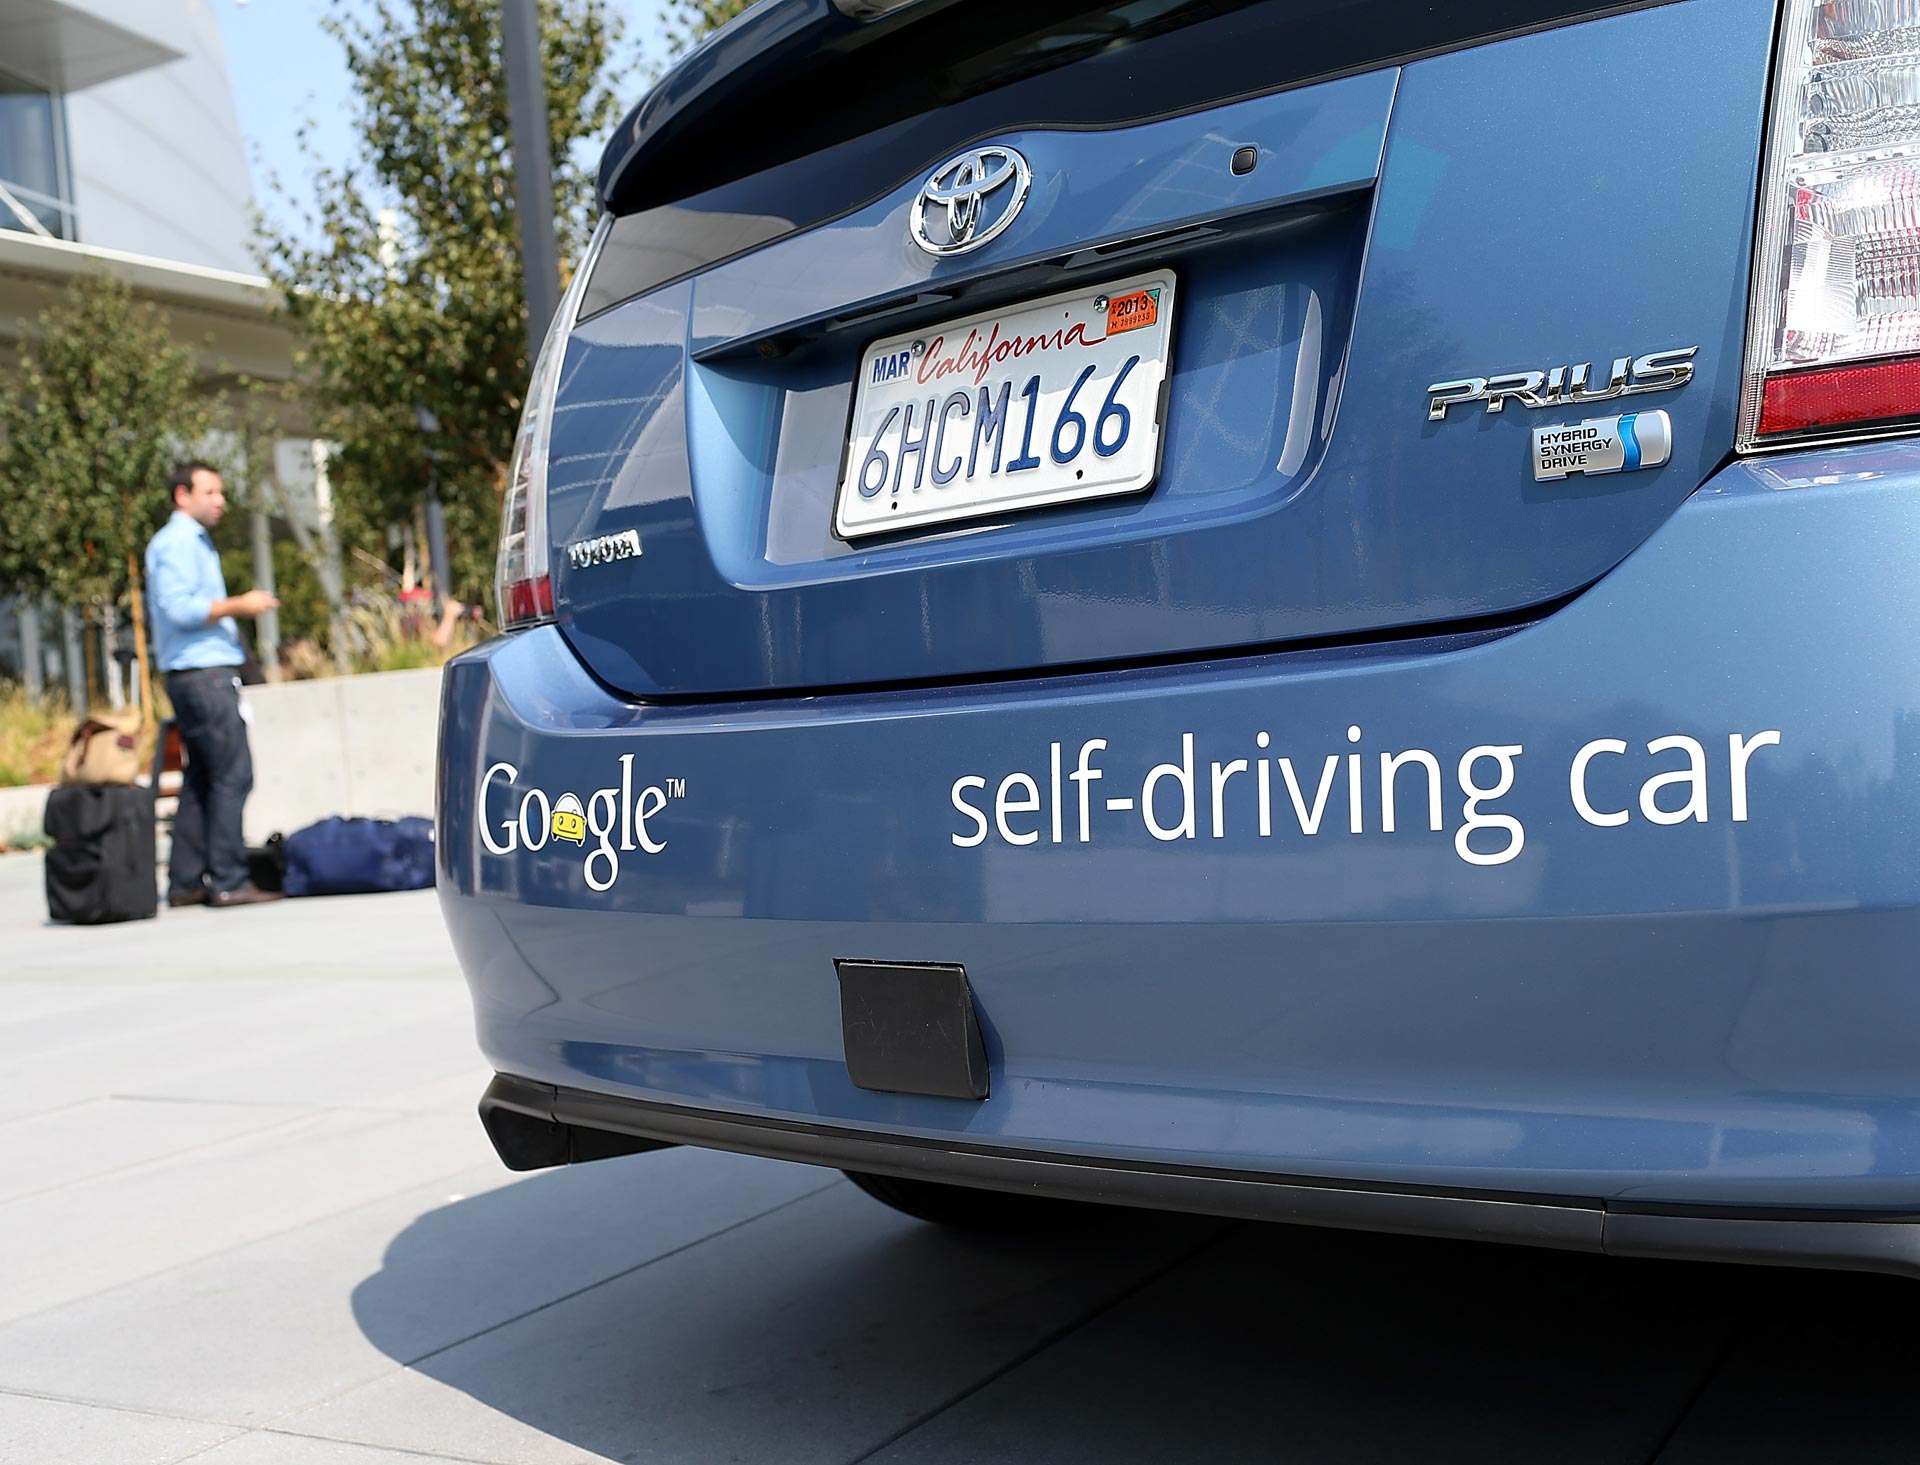 A Google self-driving car is displayed at the Google headquarters on September 25, 2012.